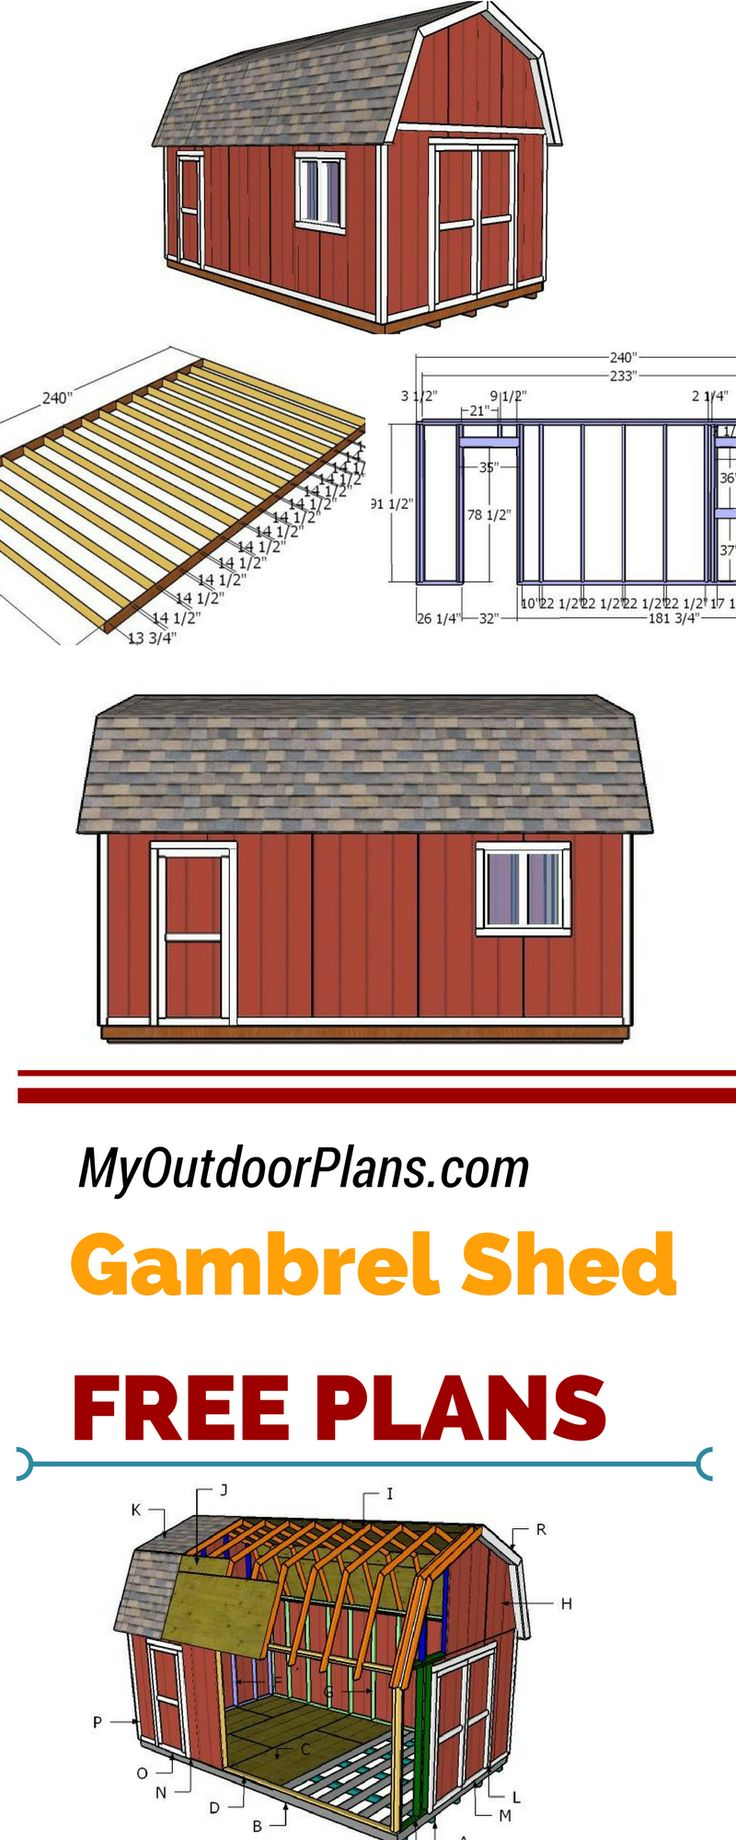 151 best shed plans images on pinterest gardens storage sheds